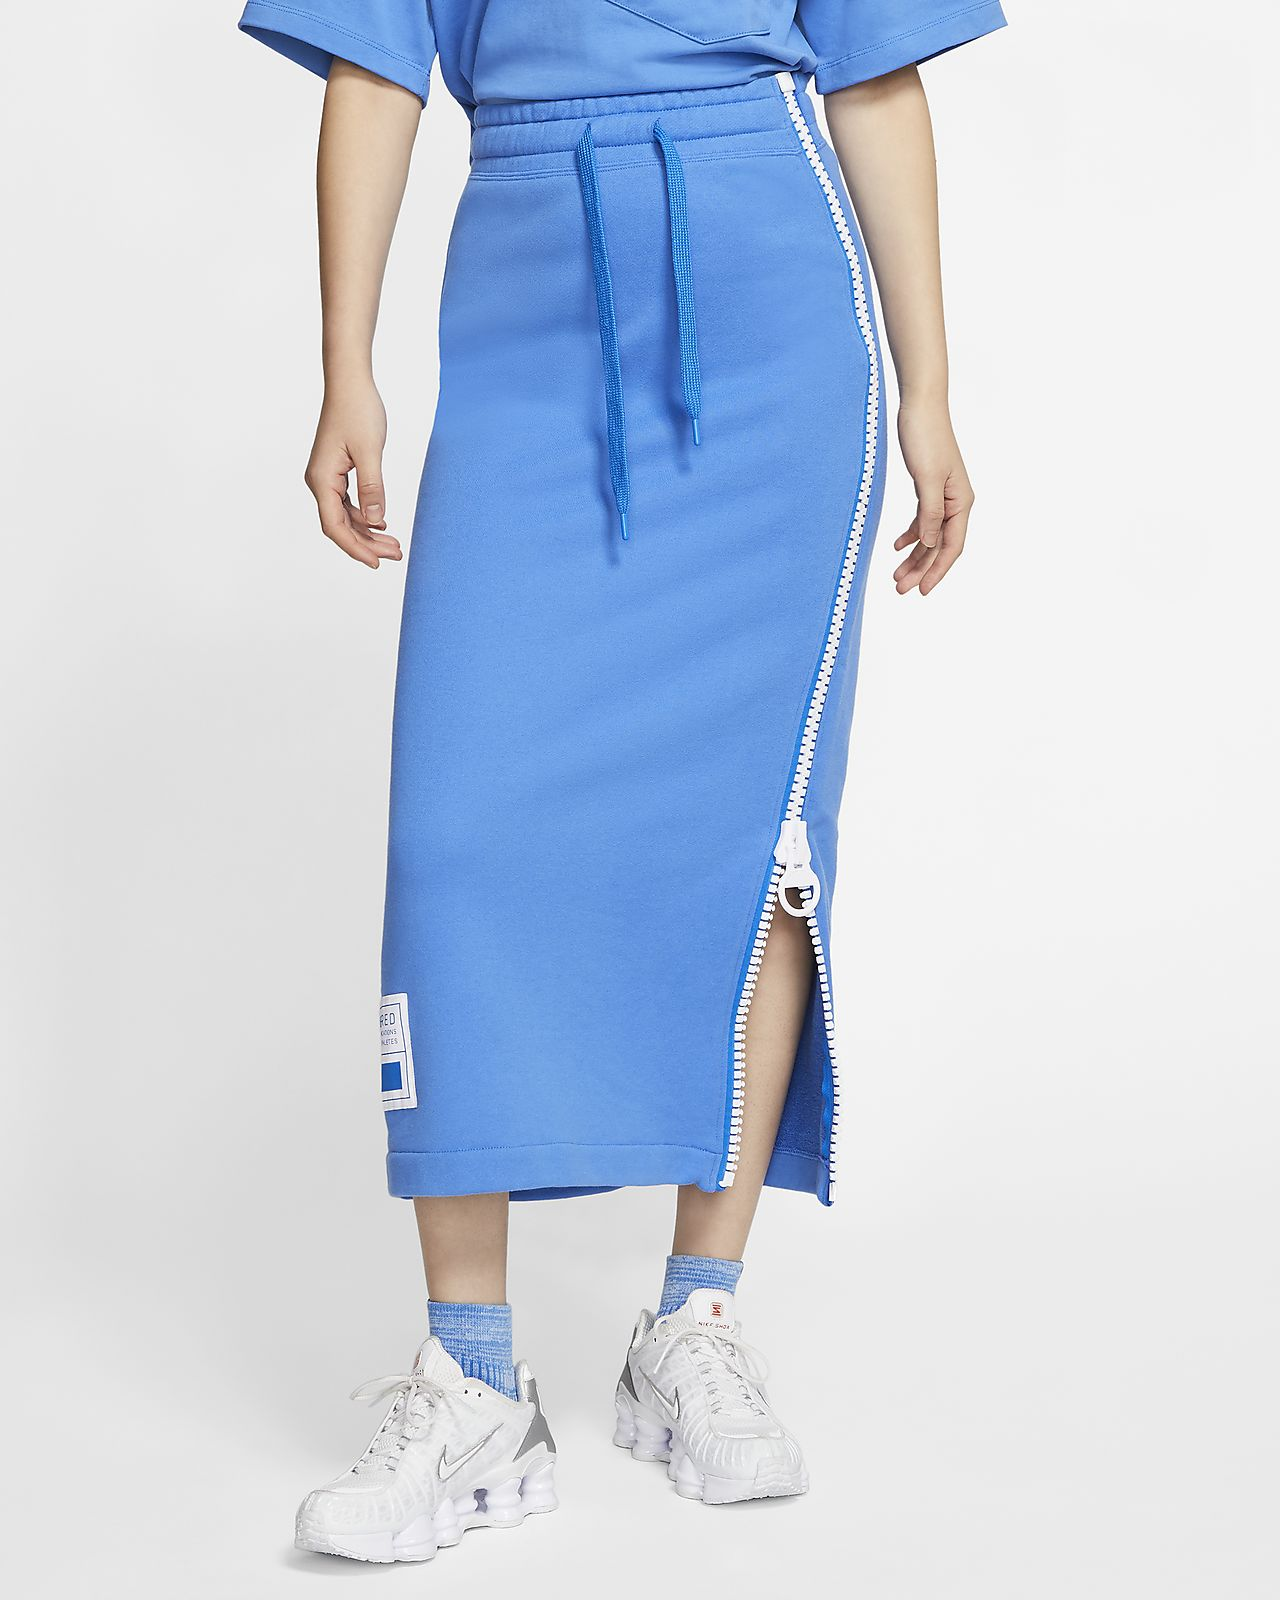 Nike Sportswear NSW Women's Fleece Skirt